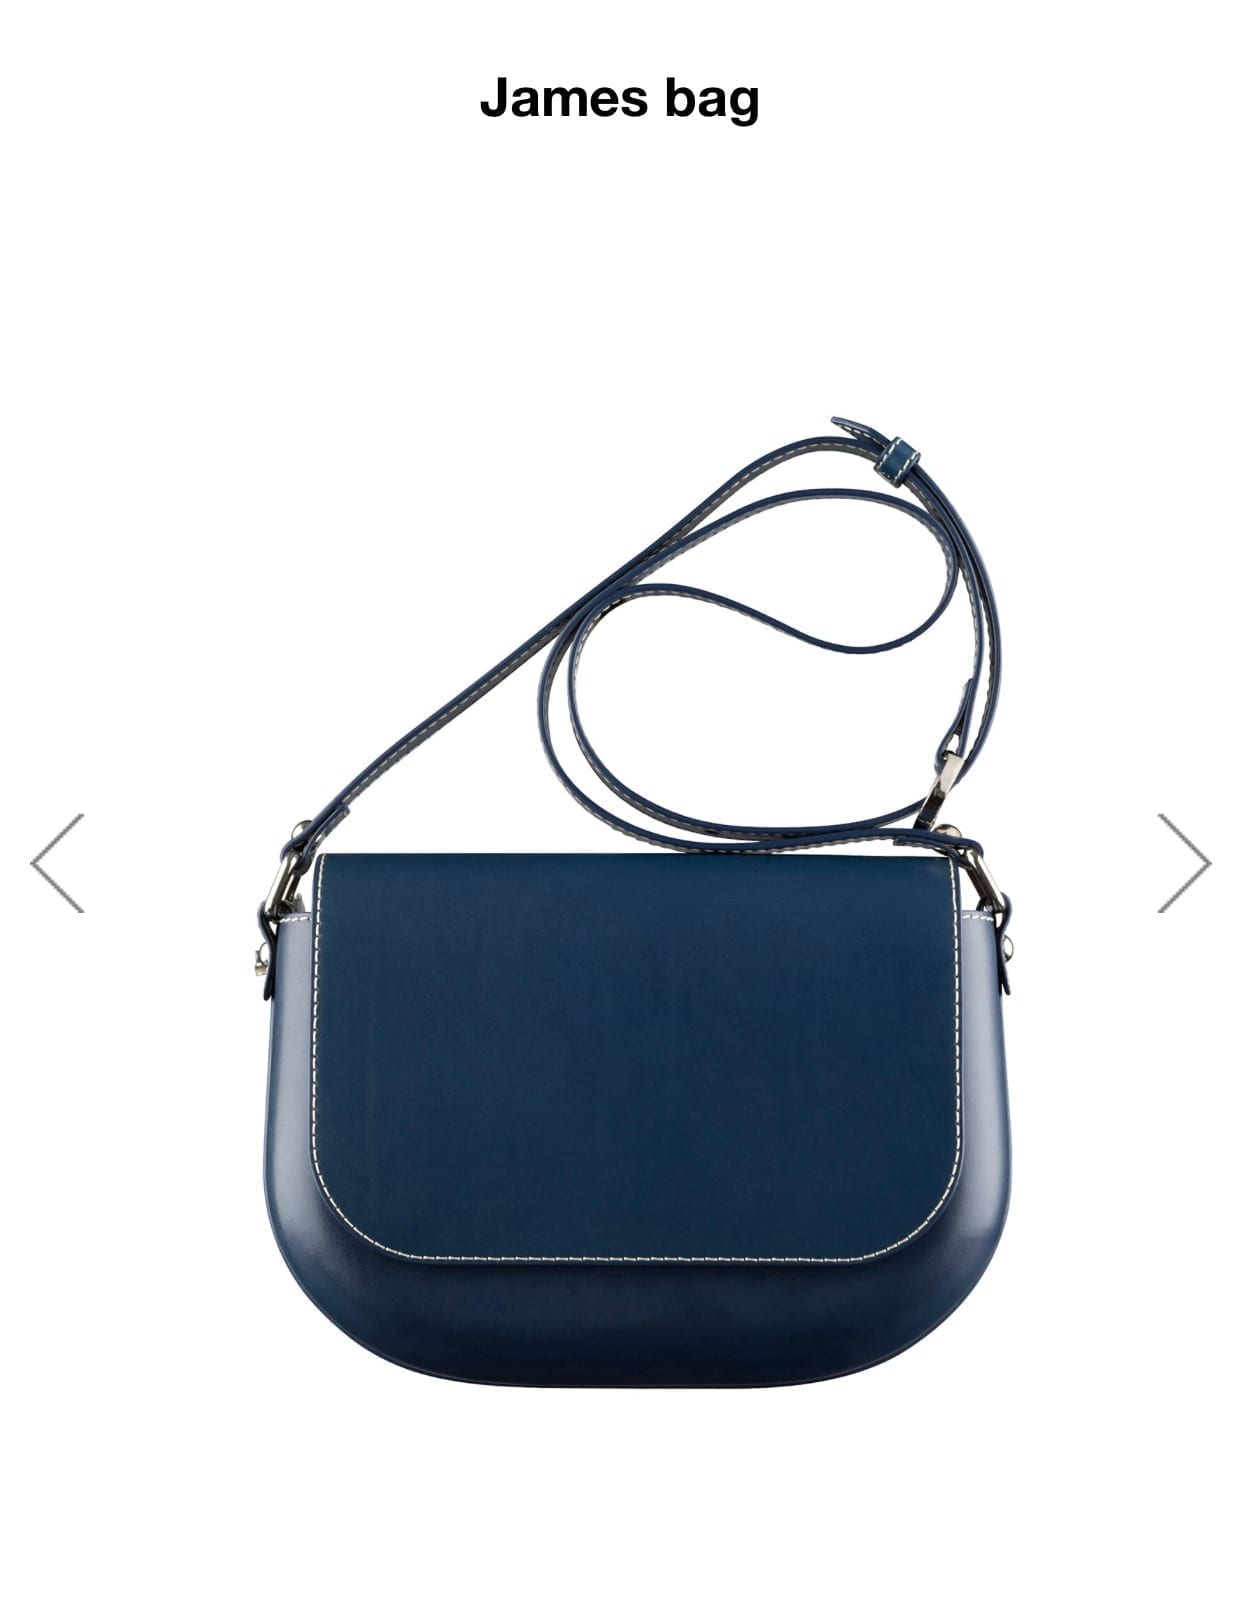 Che borsa mi consigliate, theladycracy.it, che borsa comprare, che borsa regalare, elisa bellino, fashion blog, fashion blogger italiane 2017, fashion blogger famose 2017, blog moda 2017, blogger moda più seguite 2017, apc bag